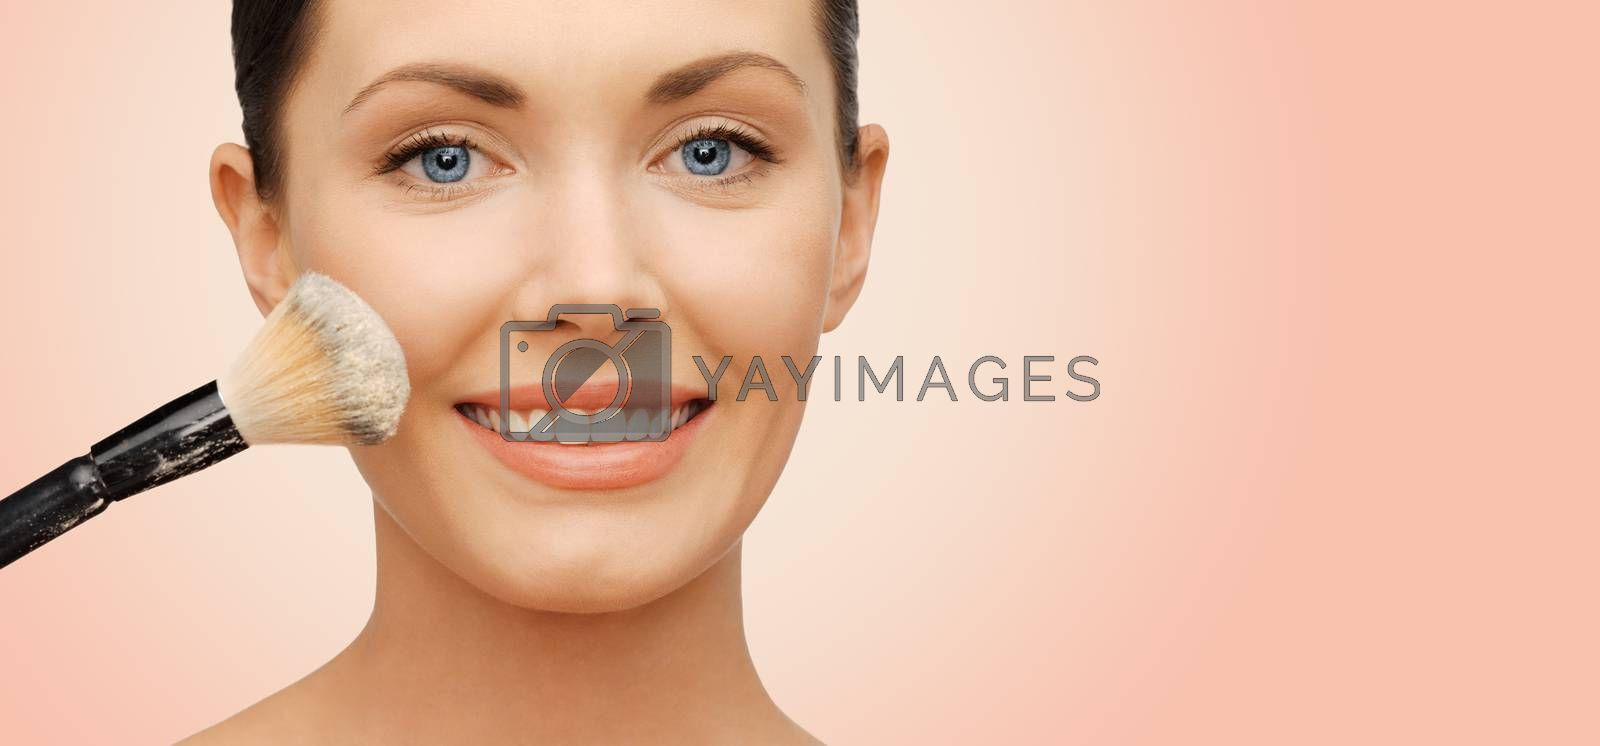 beauty, people and makeup concept - happy woman face applying powder foundation with brush over beige background